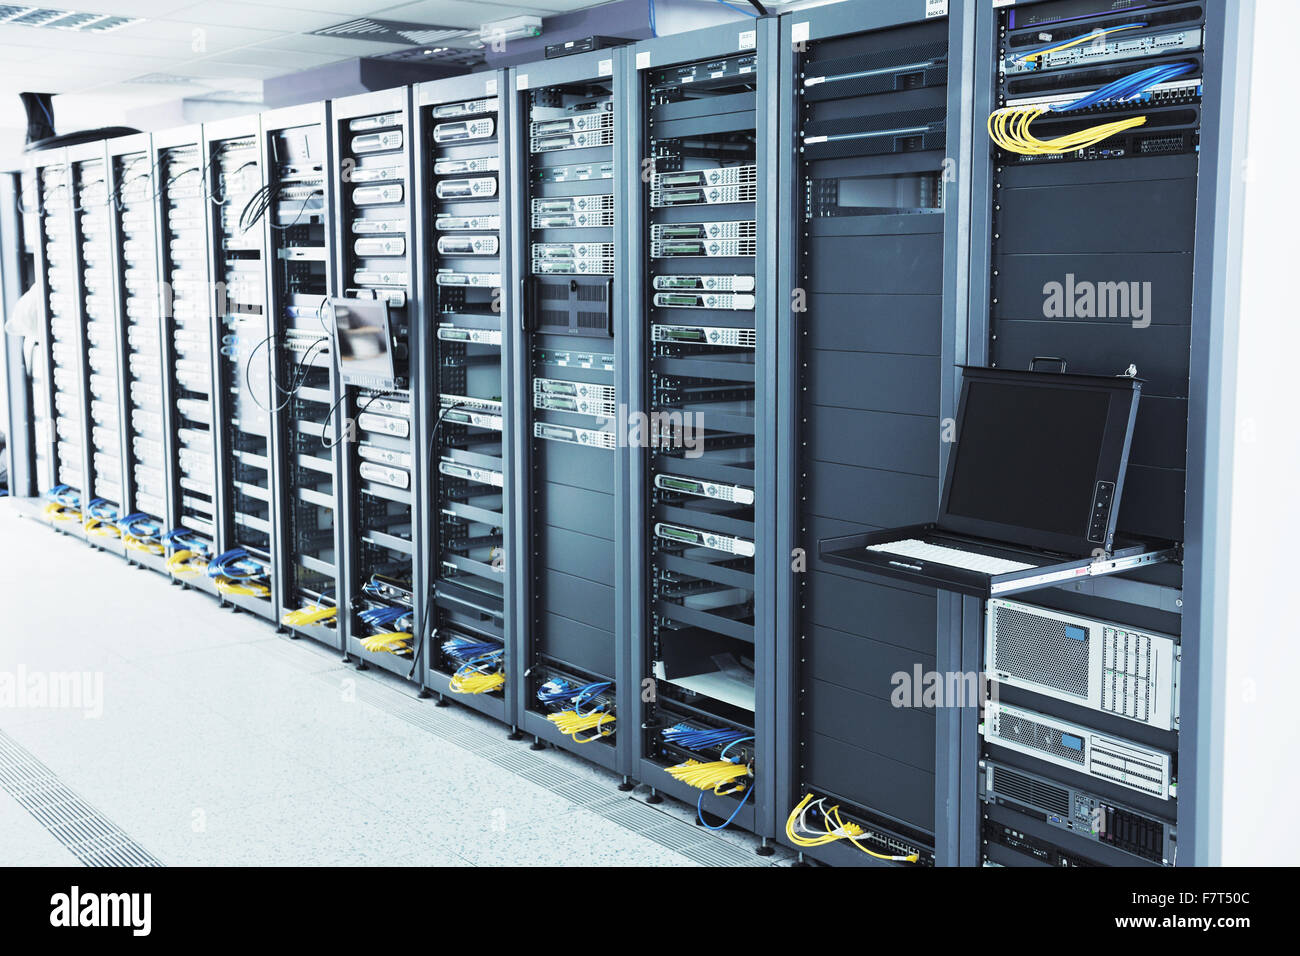 network server room with computers for digital tv ip communications